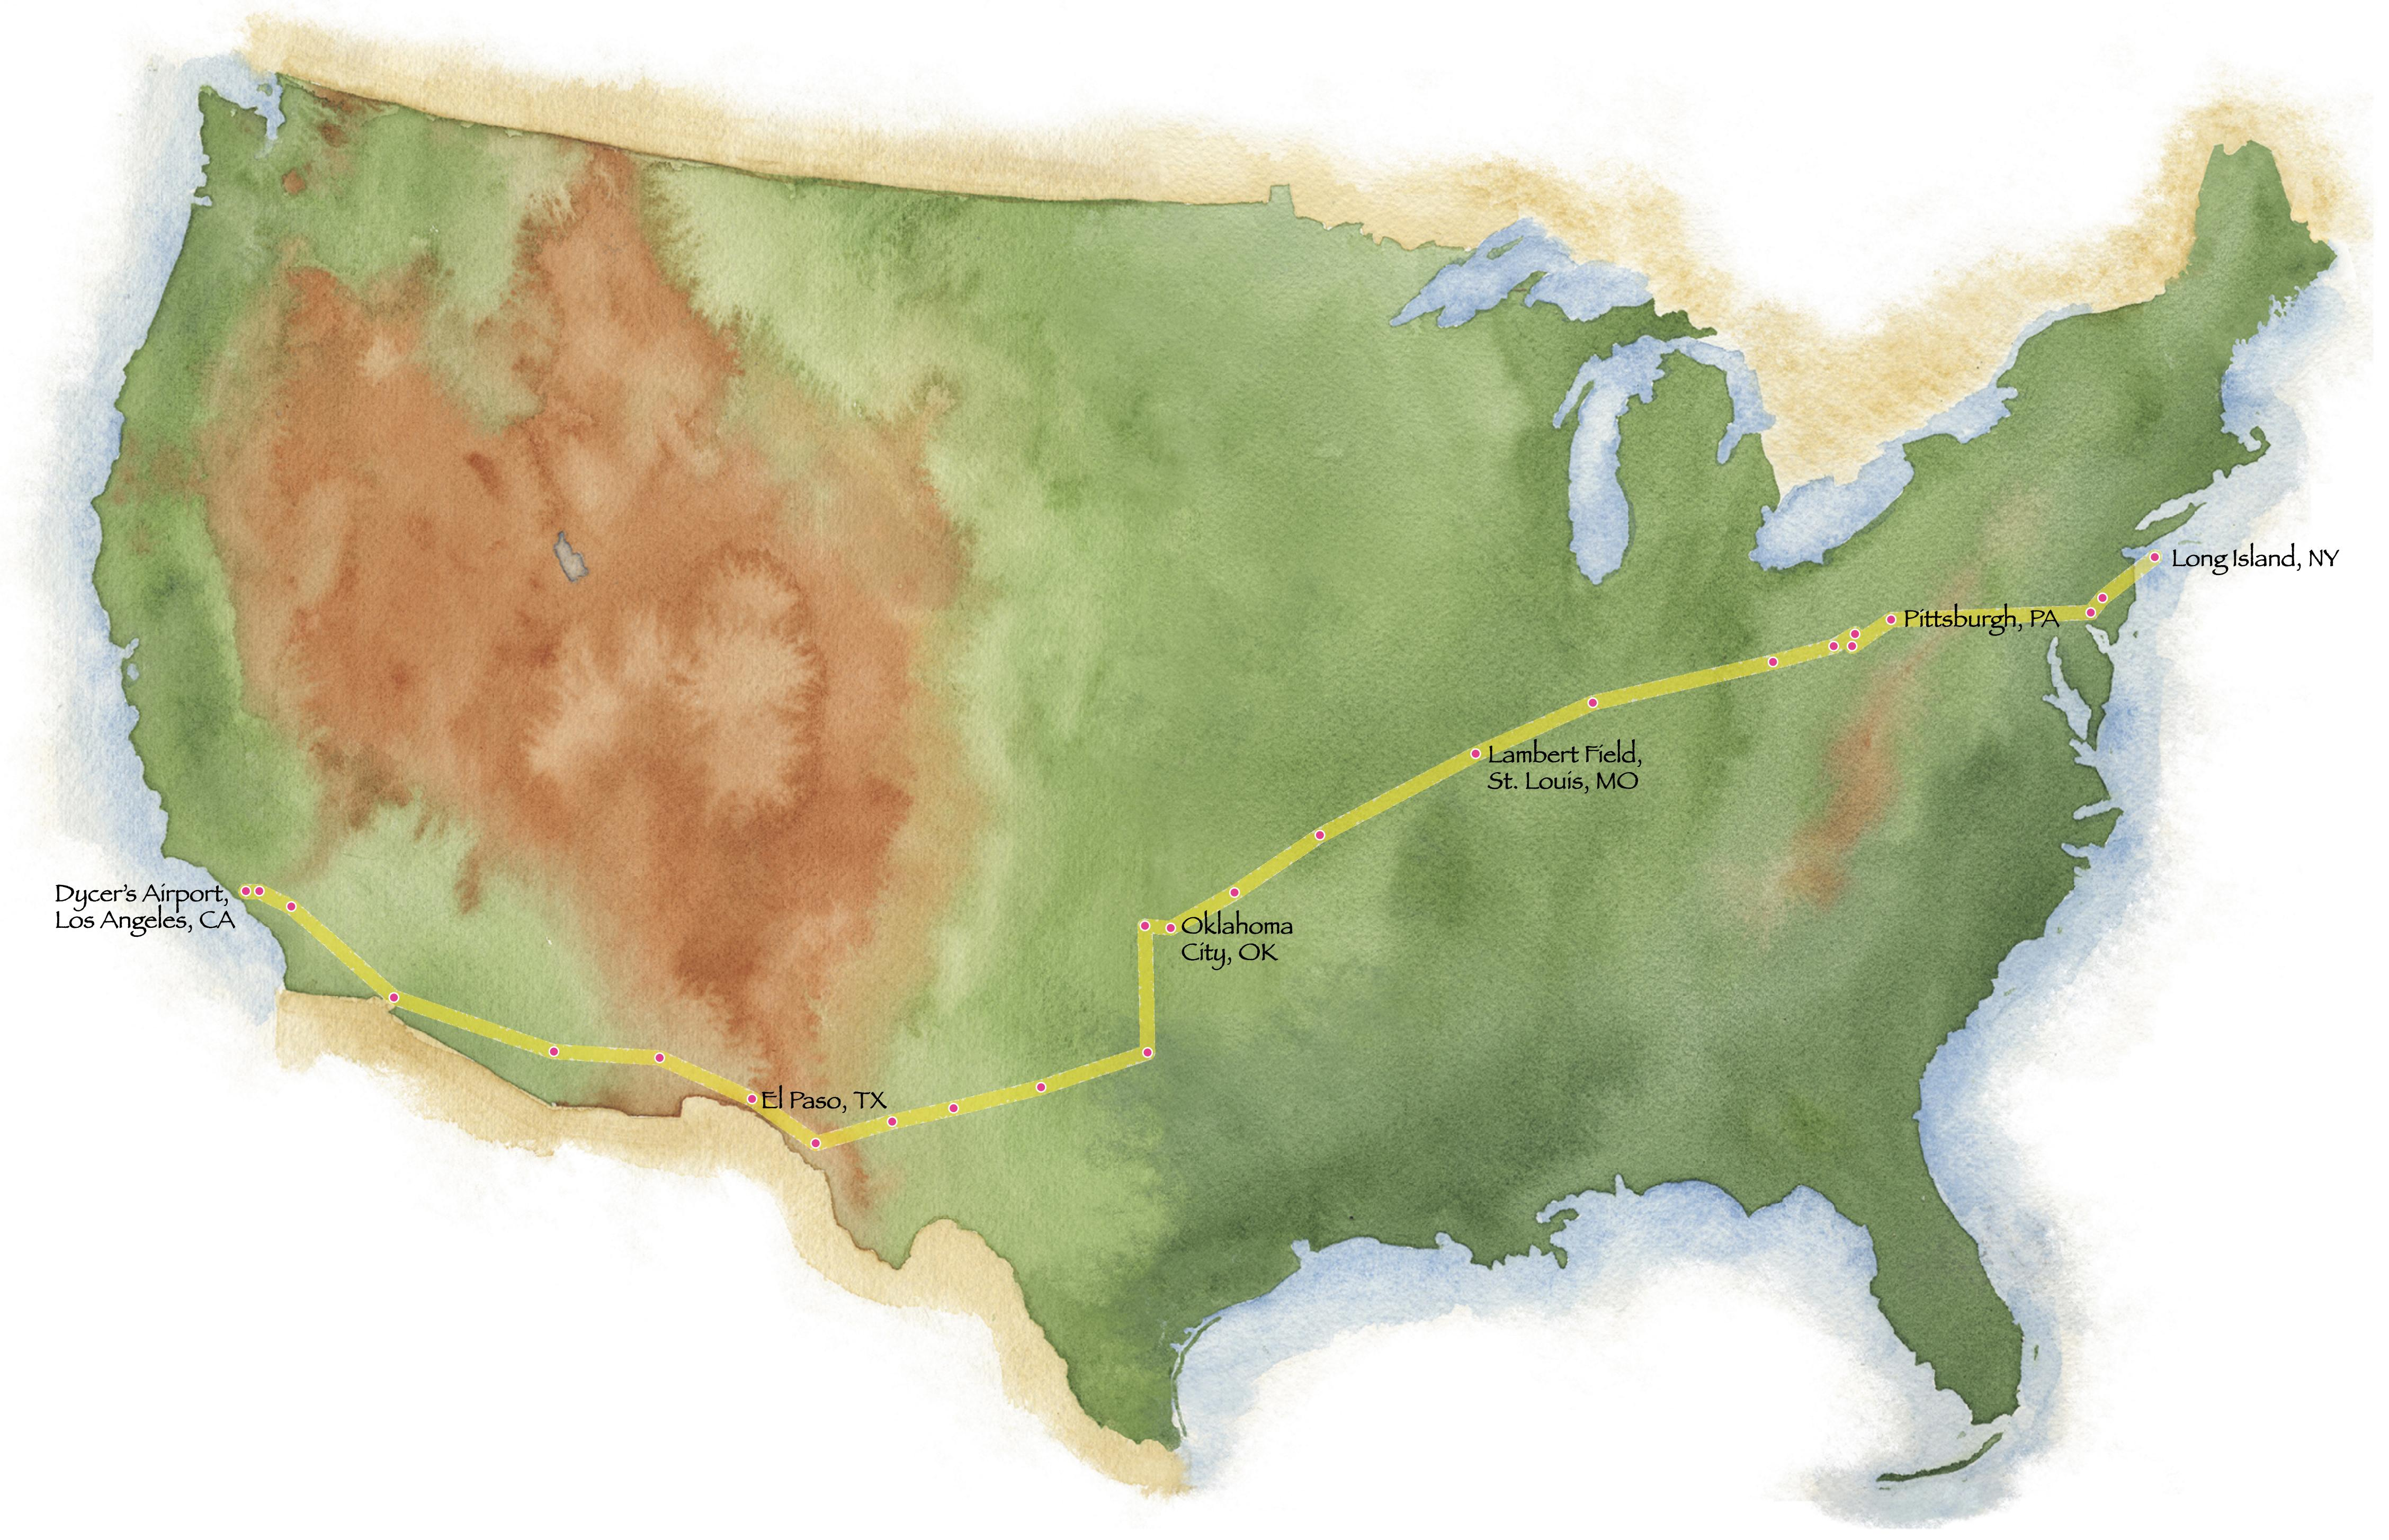 Planned route for coast-to-coast flight